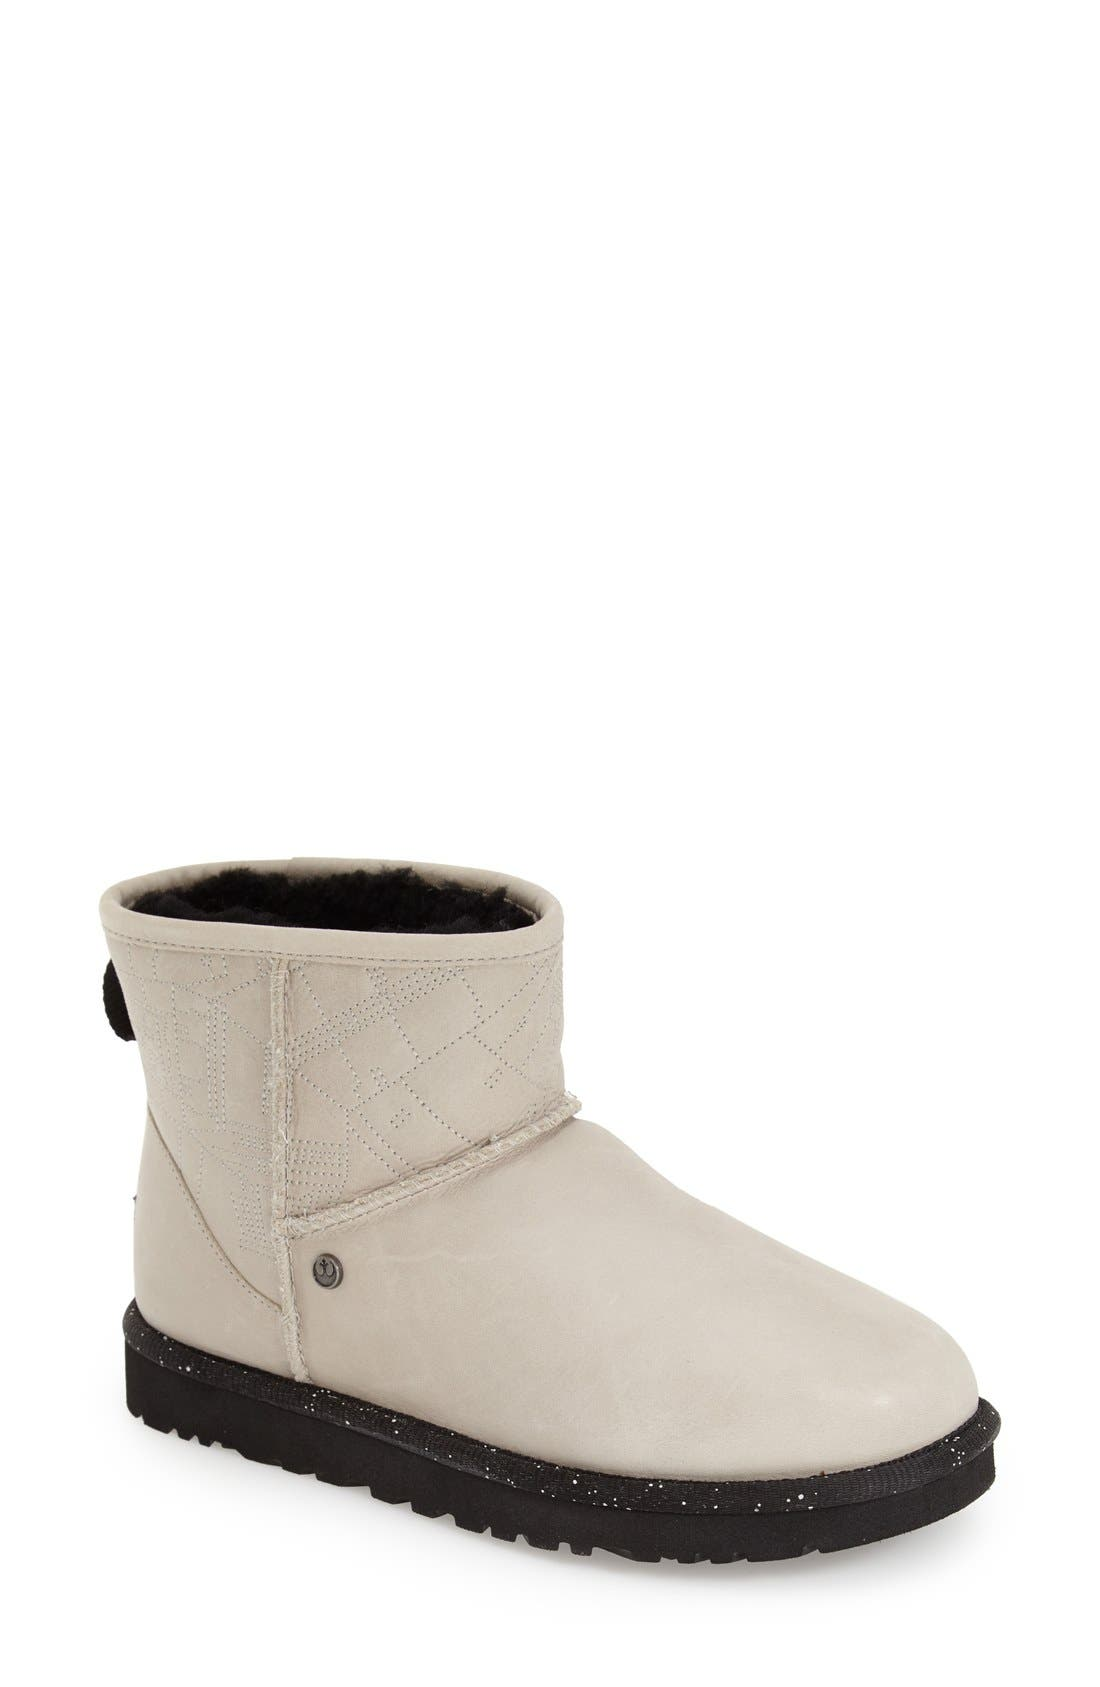 Alternate Image 1 Selected - UGG® 'Star Wars Millennium Falcon - Classic Mini' Water Resistant Short Boot (Women)